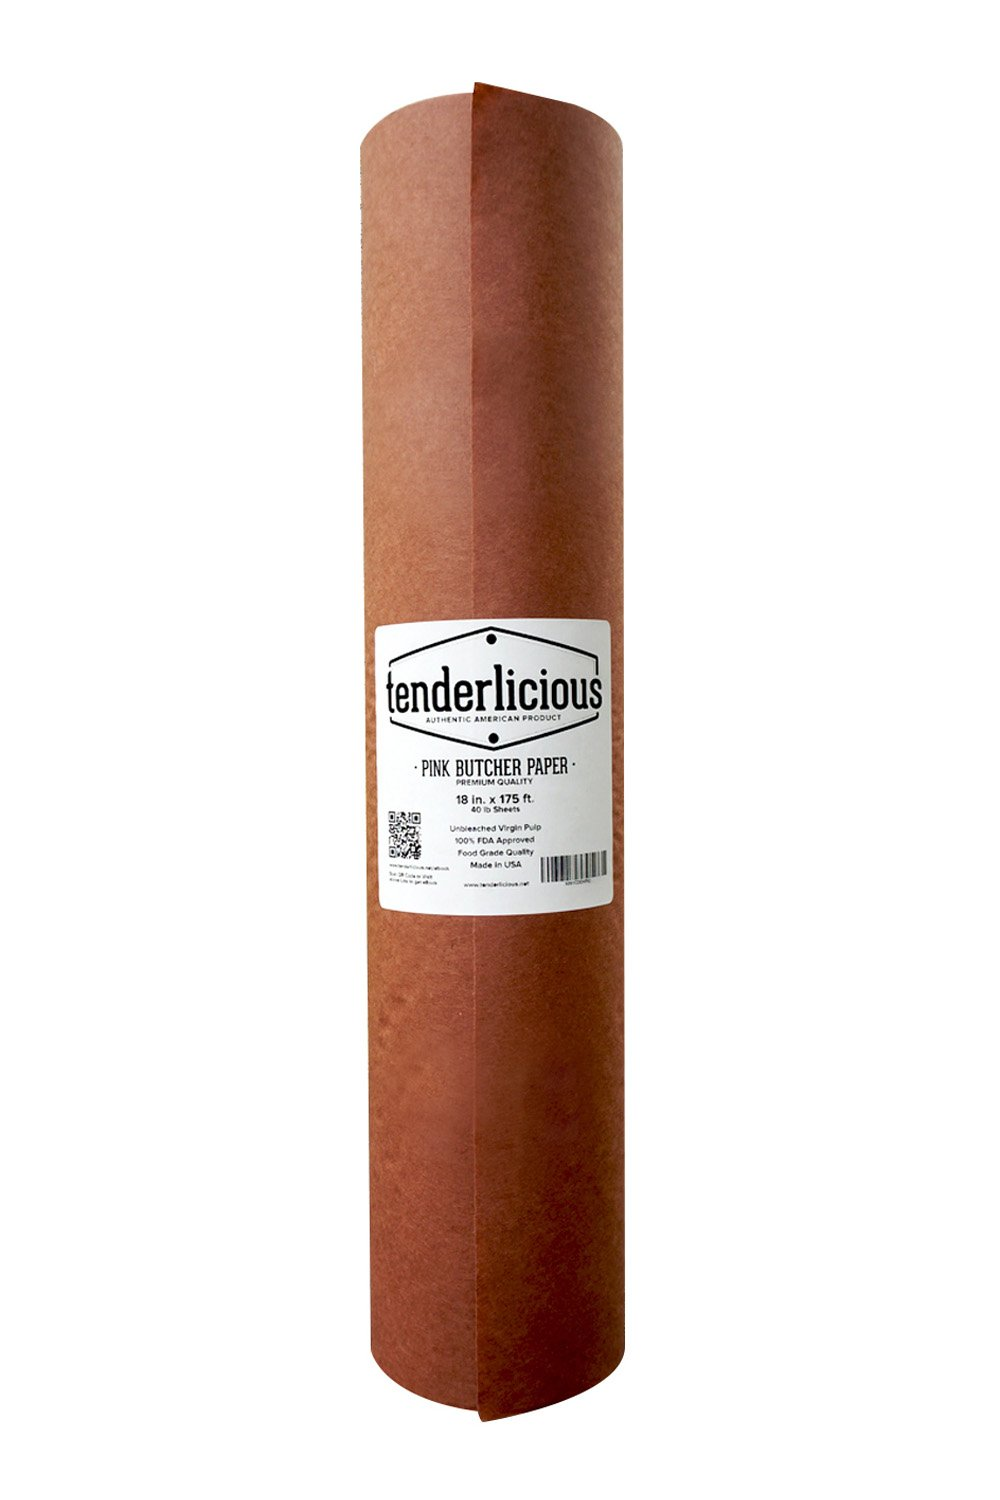 Pink Butcher Kraft Paper Roll - 18 '' x 175' (2100'') Peach Wrapping Paper for Beef Briskets - USA Made - All Natural FDA Approved Food Grade BBQ Meat Smoking Paper - Unbleached Unwaxed Uncoated Sheet